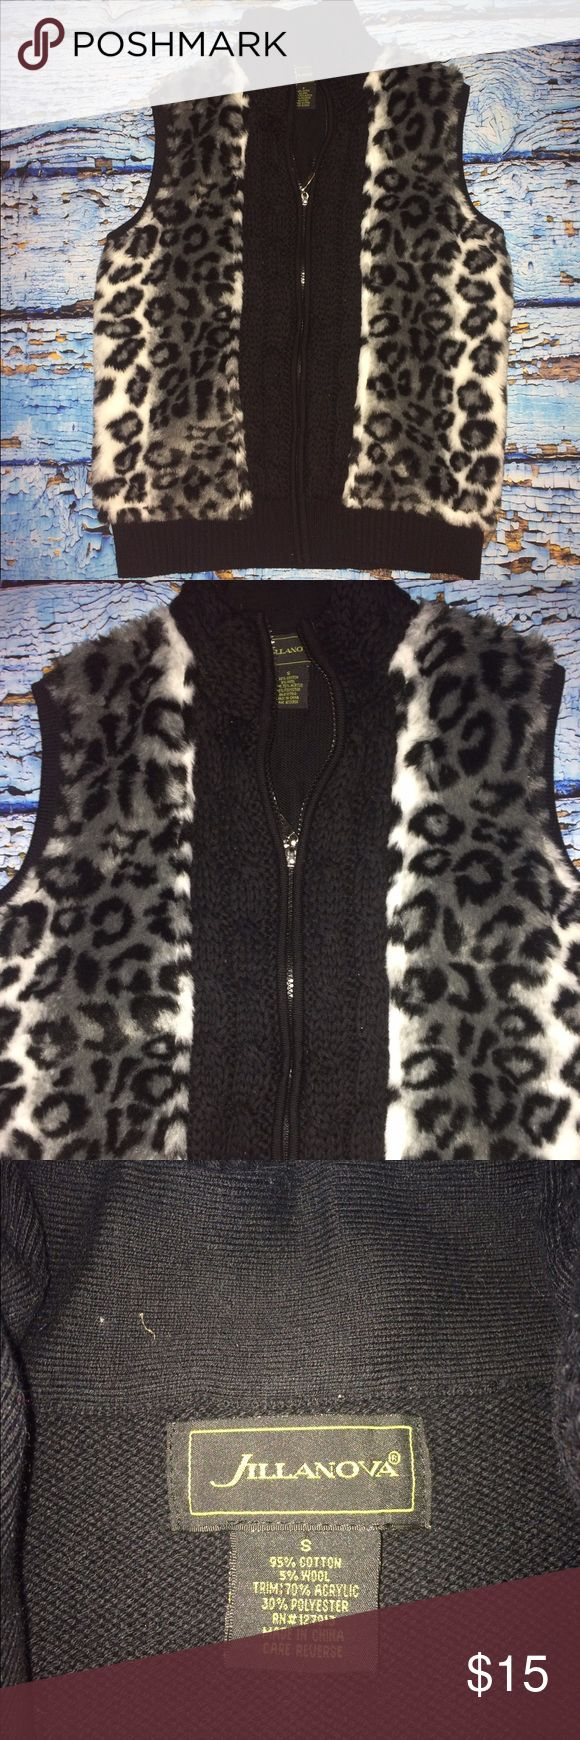 Jilanova women's zip up vest black animal print  S Jilanova women's zip up vest black animal print  S. Preowned in fantastic gently used condition with no visible signs of wear! jilanova Jackets & Coats Vests